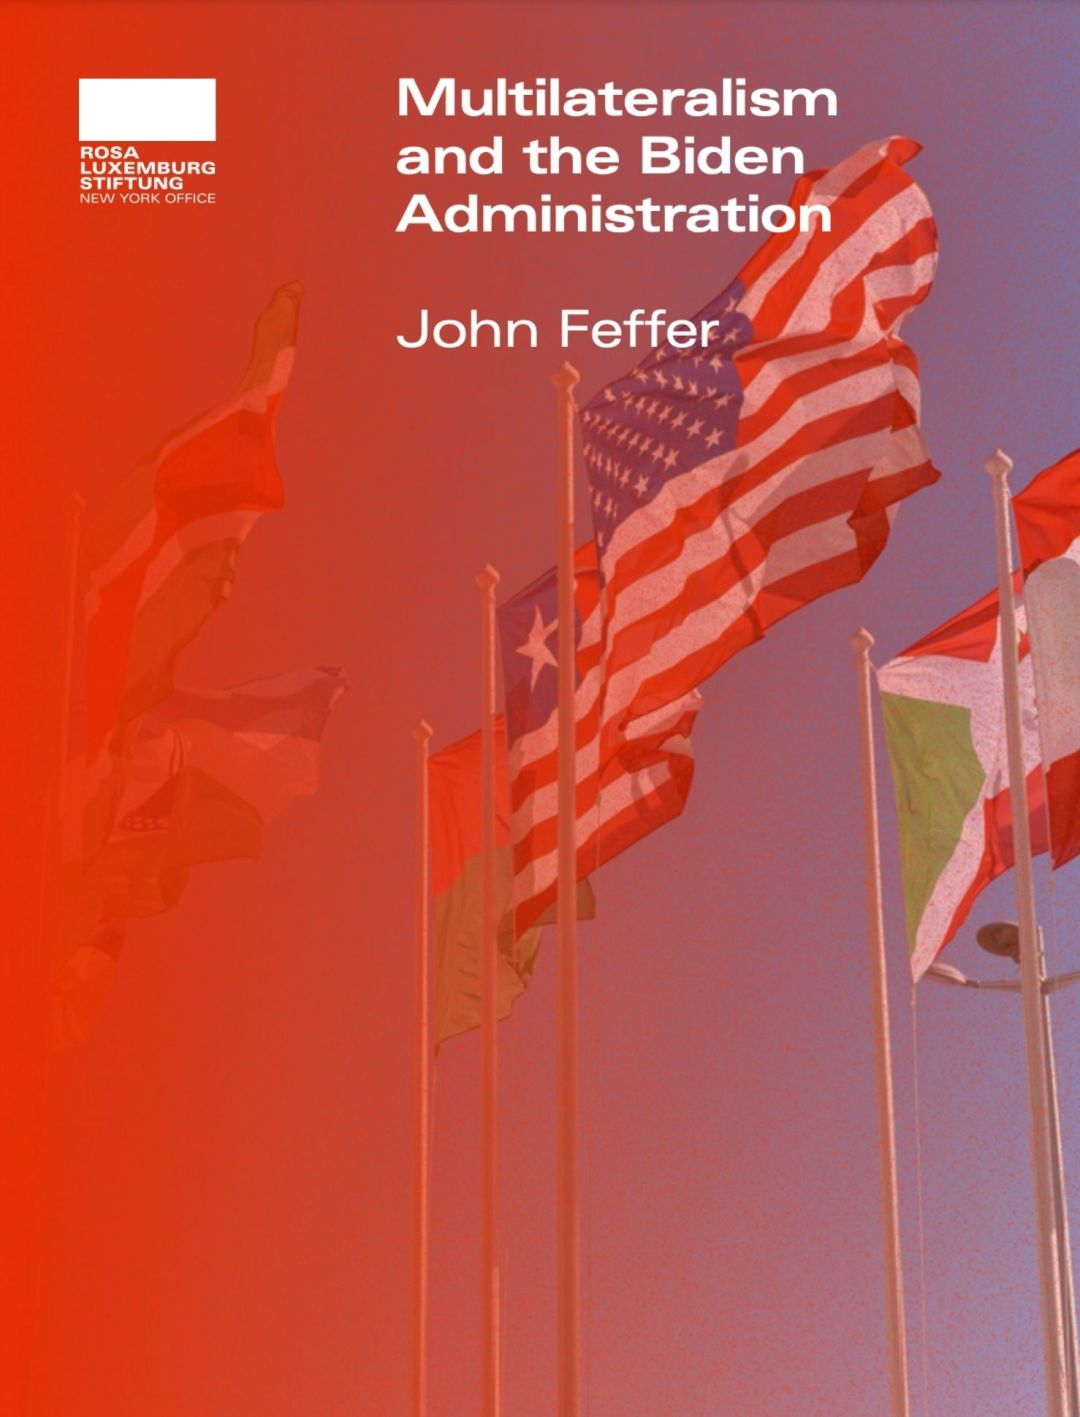 Multilateralism and the Biden Administration